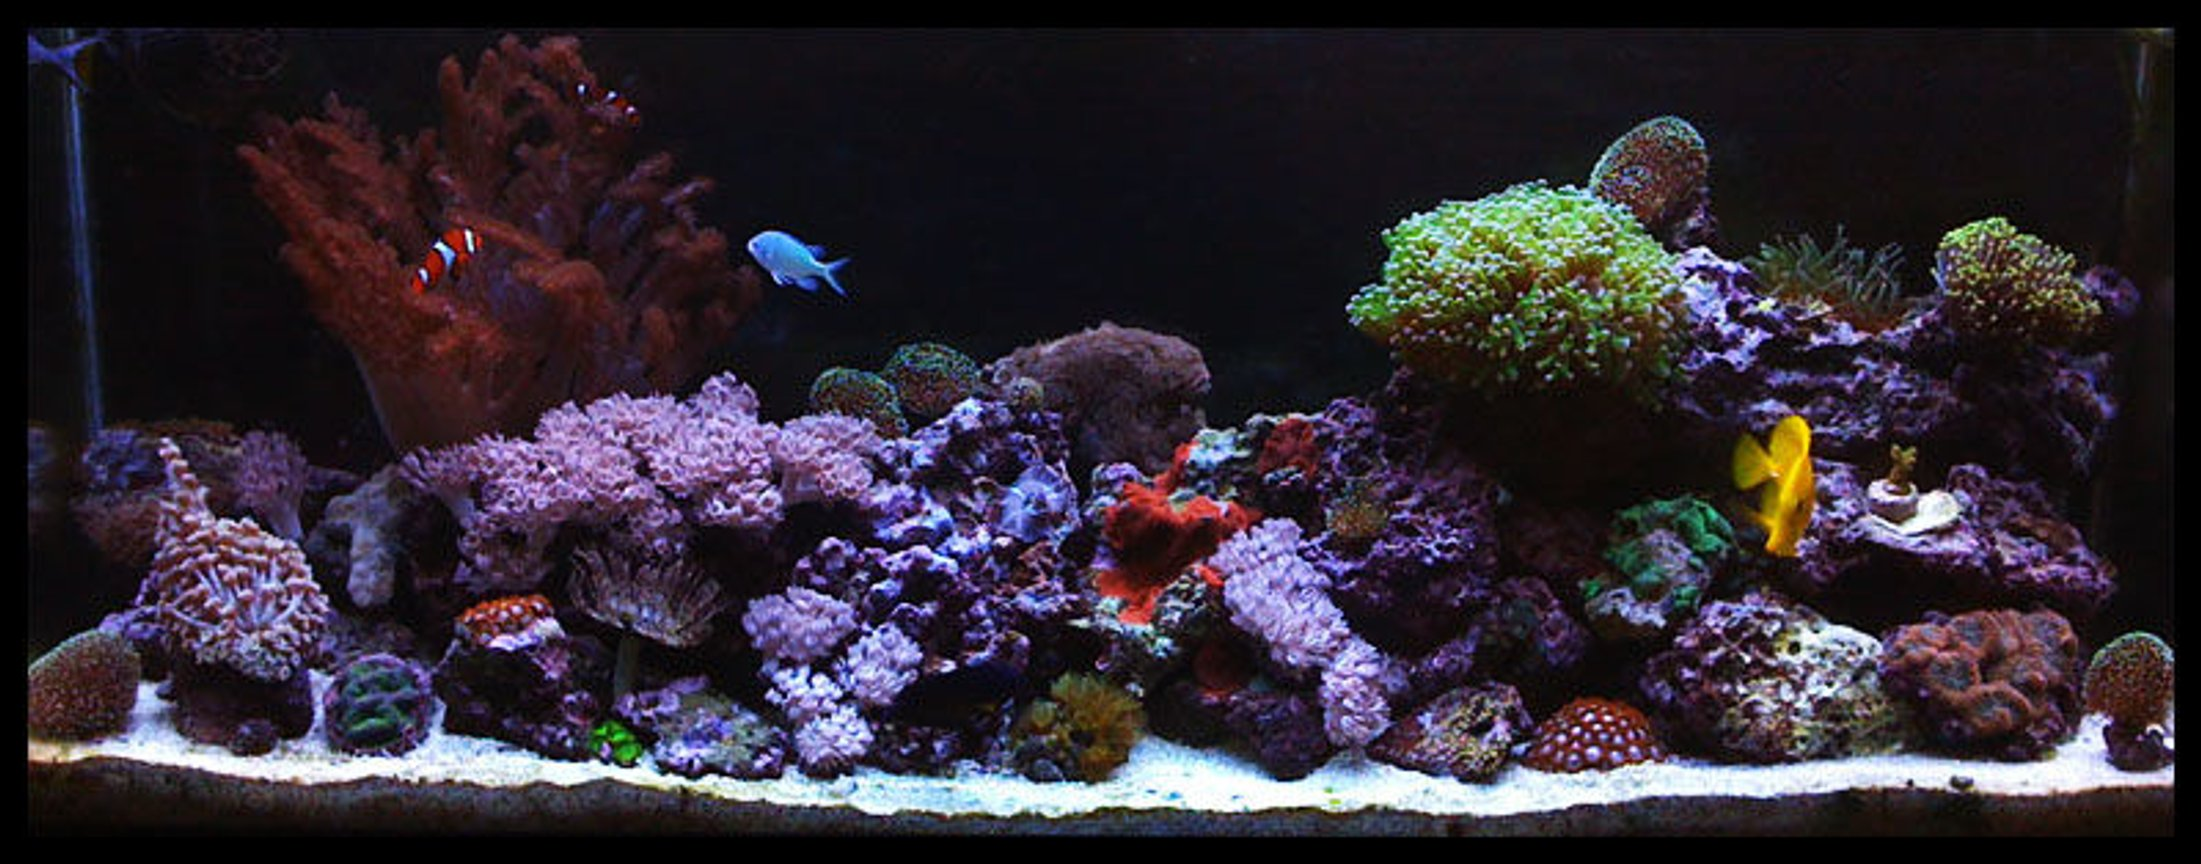 55 gallons reef tank (mostly live coral and fish) - Full Shot